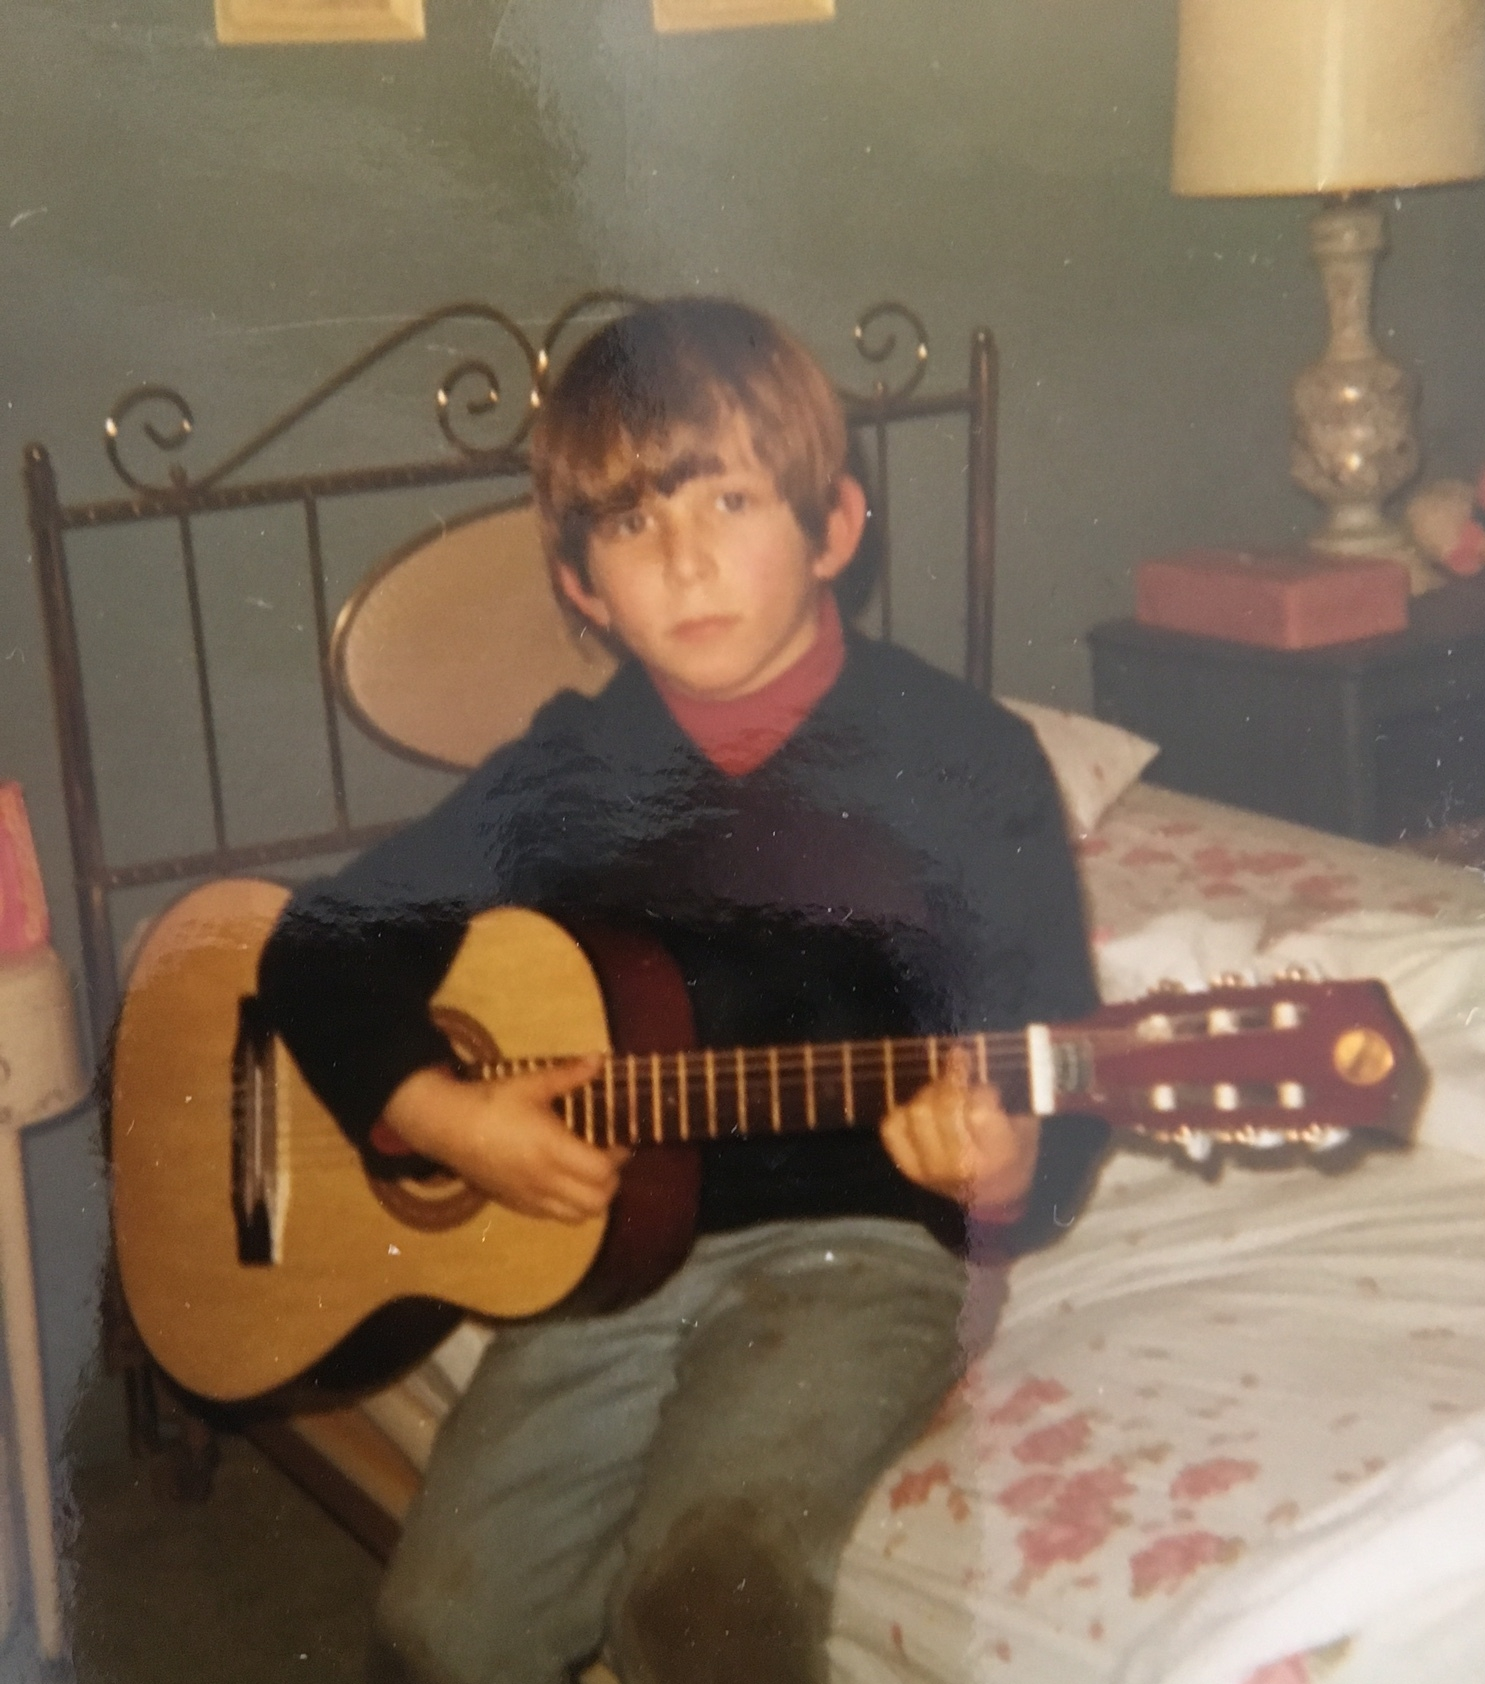 Roger gets his start on guitar. He's now a successful musician!